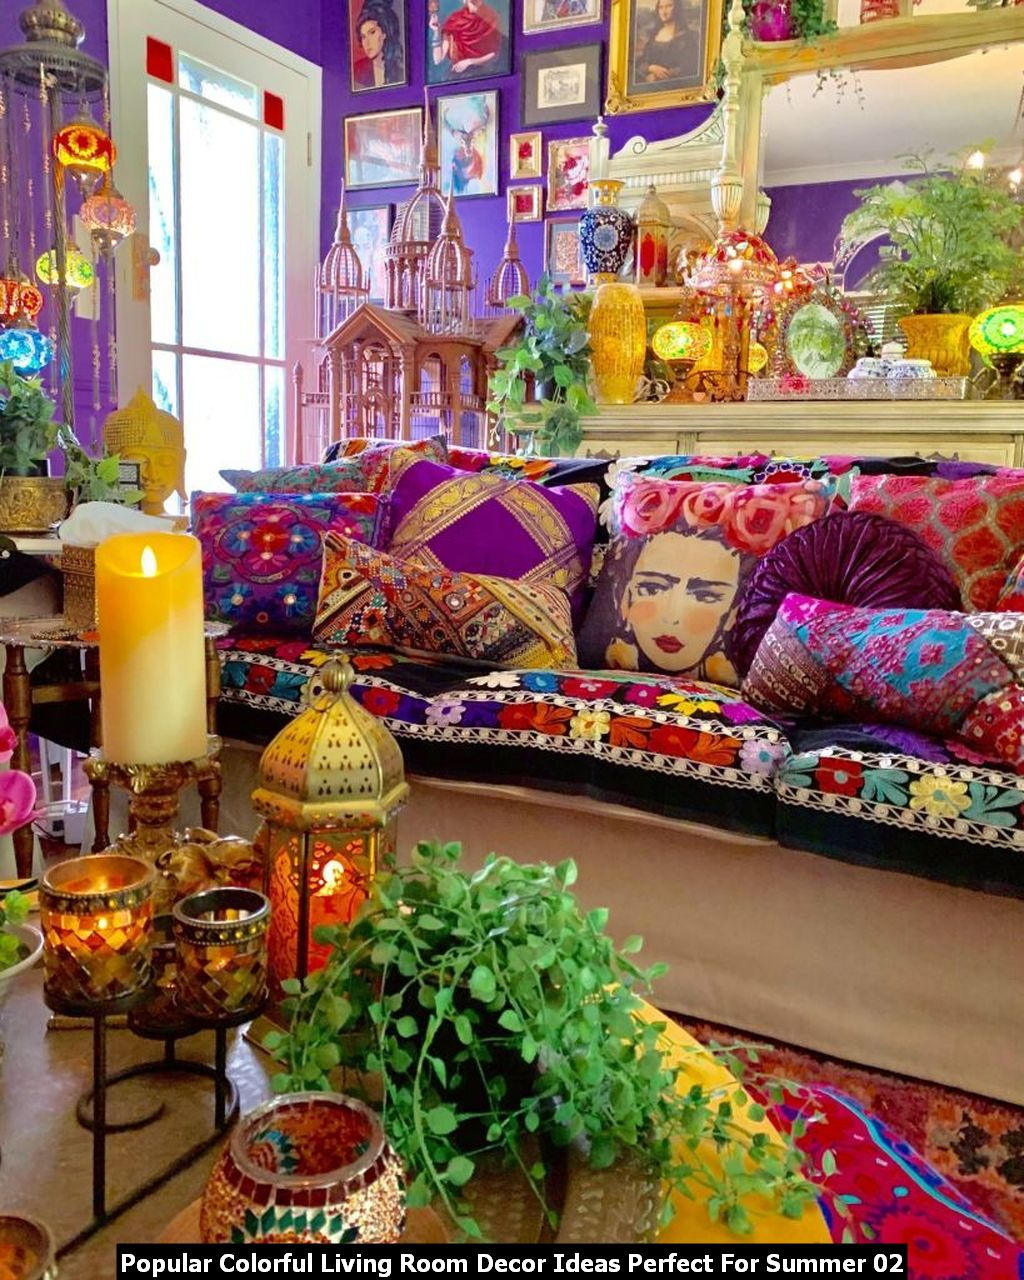 Popular Colorful Living Room Decor Ideas Perfect For Summer 02